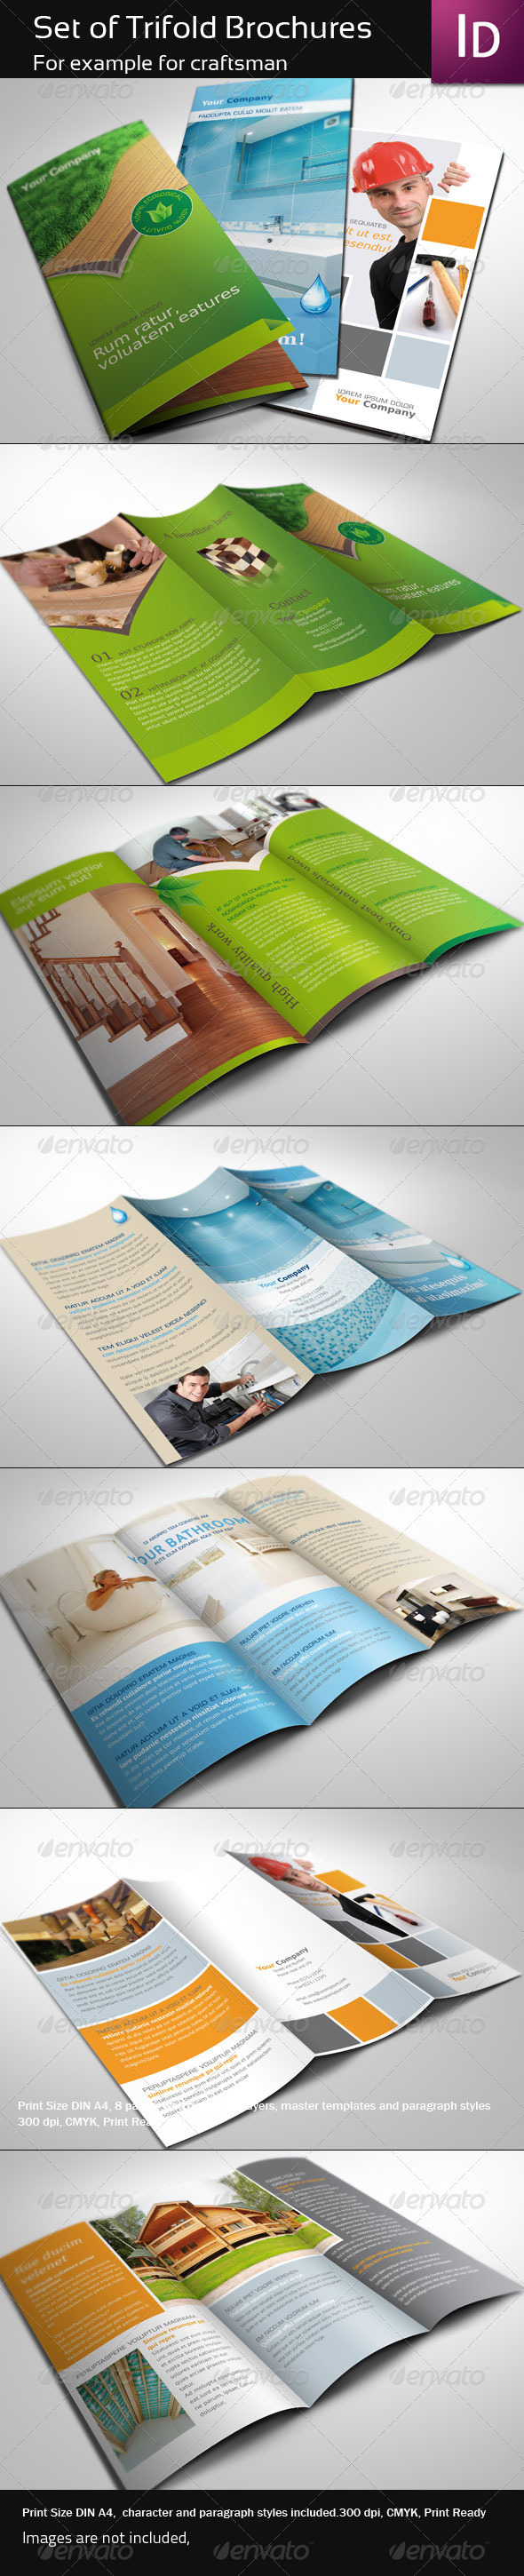 GraphicRiver Set of Trifold Brochure 337187